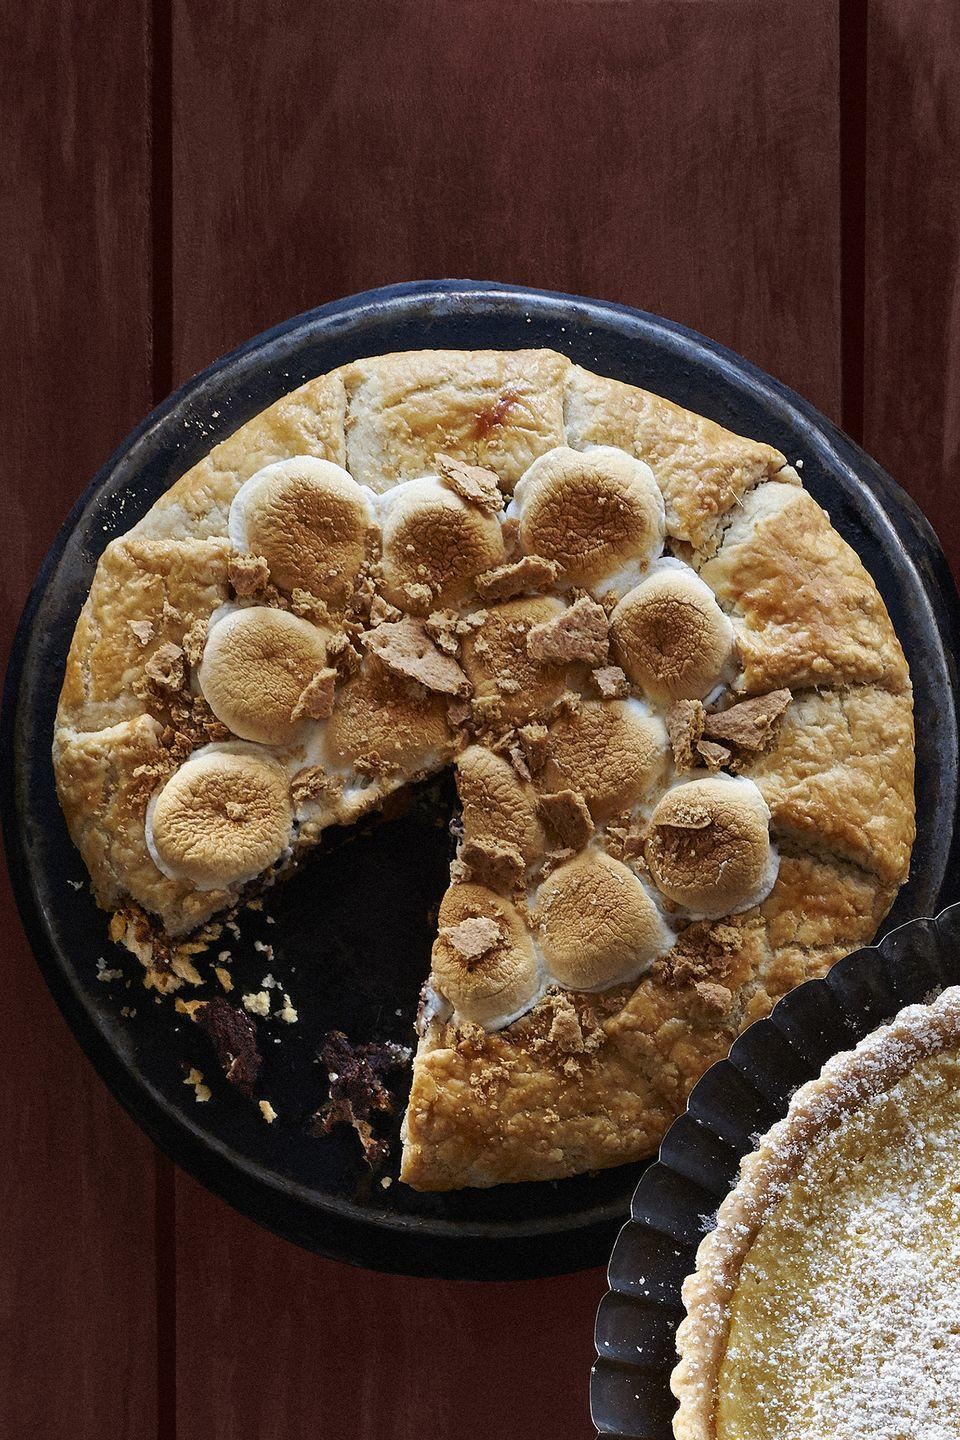 "<p>S'mores in pie form? Sign us up!</p><p><strong><a href=""https://www.countryliving.com/food-drinks/recipes/a36546/smores-galette/"" rel=""nofollow noopener"" target=""_blank"" data-ylk=""slk:Get the recipe."" class=""link rapid-noclick-resp"">Get the recipe.</a></strong></p>"